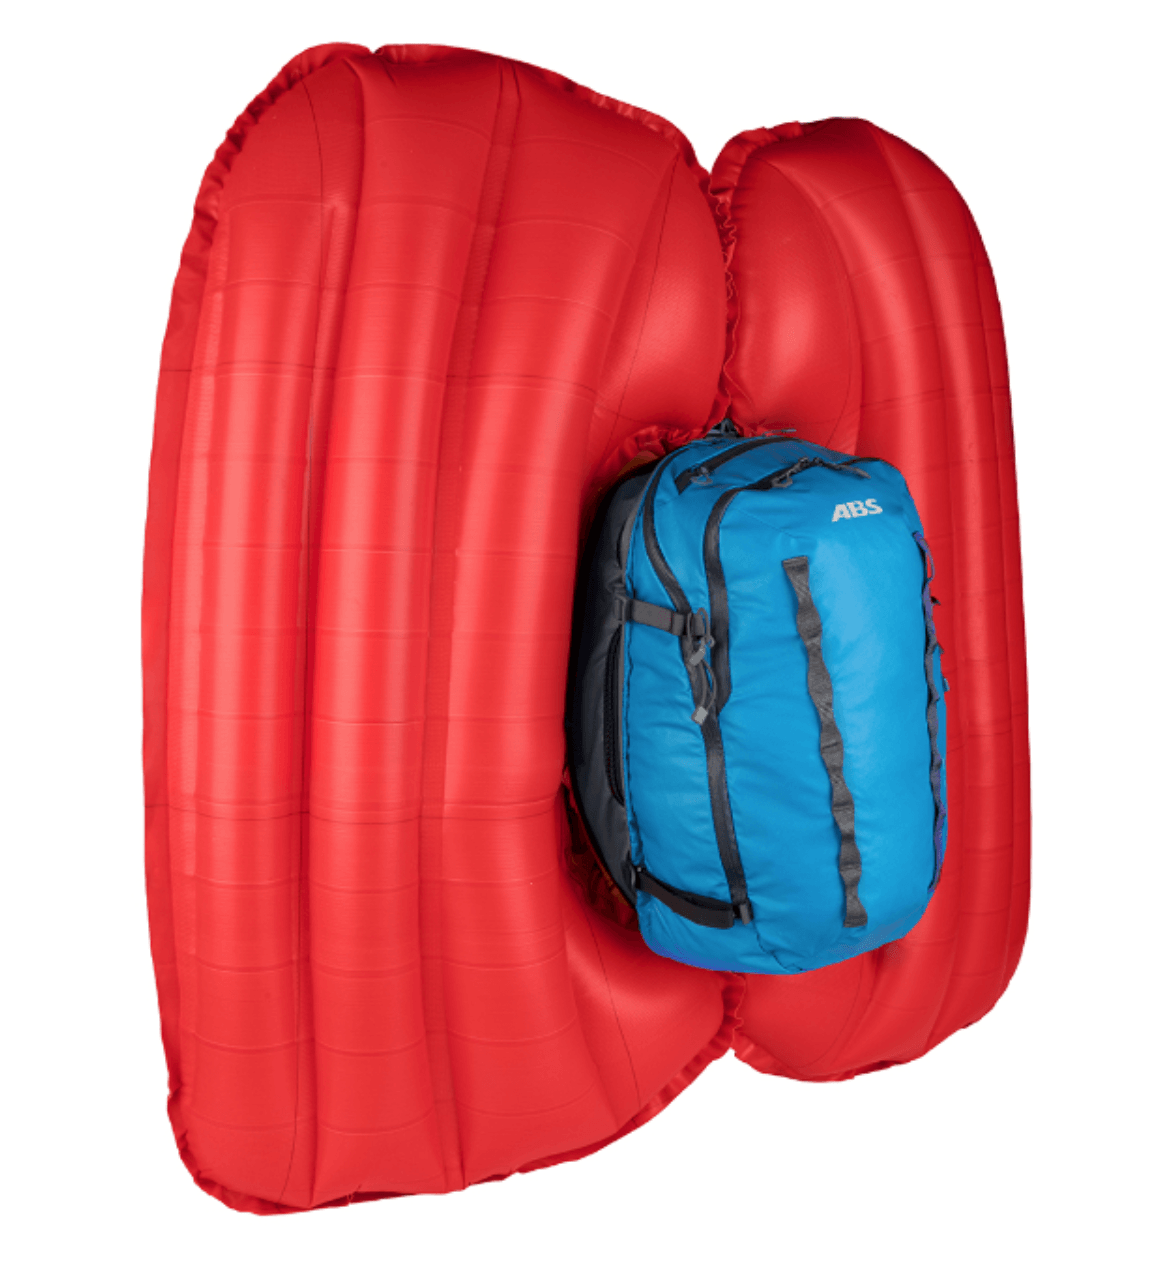 Front View - Sky Blue - Inflated Twin Airbag - ABS P.Ride Compact Base Unit + 18L Zip-on